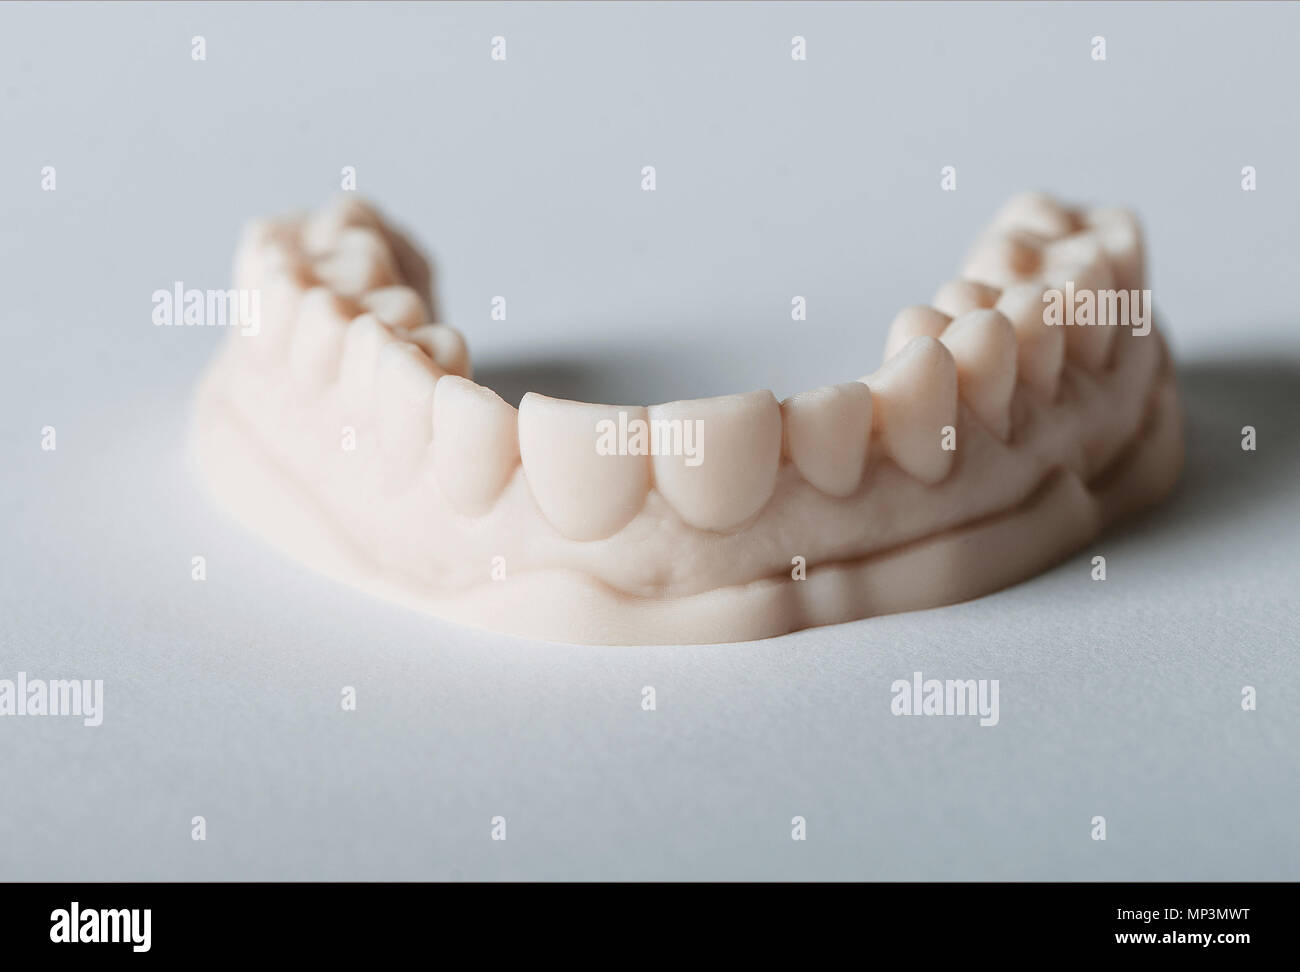 Dental and Orthodontic 3D Teeth Model - Stock Image